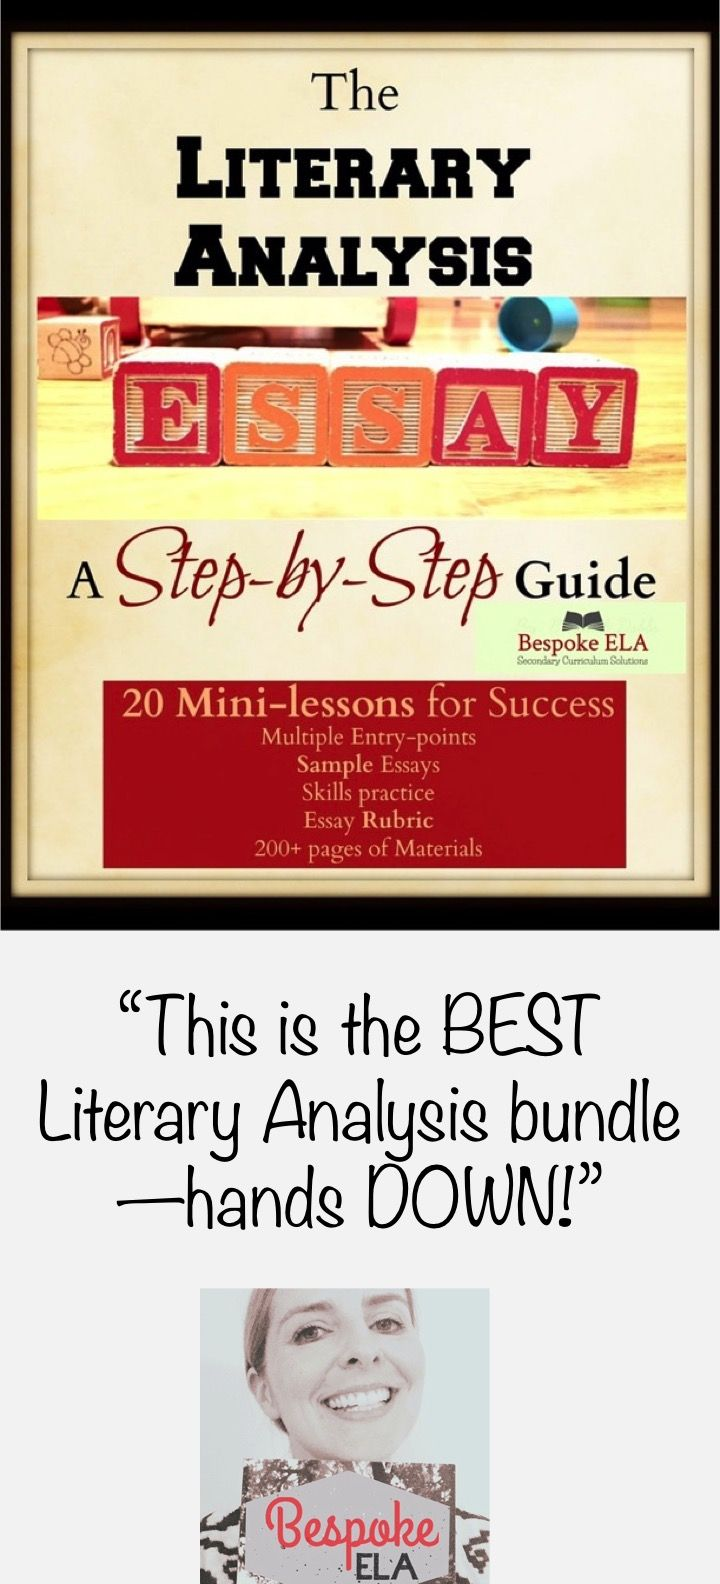 Essay On English Language This Is The Bestselling Product From Bespoke Ela It Contains   Minilessons For Guiding Students Through Writing The Literary Analysis  Essay High School Application Essay Examples also High School Essay Samples Mega Bundle The Literary Analysis Essay Guide In  Minilessons  Thesis For Argumentative Essay Examples